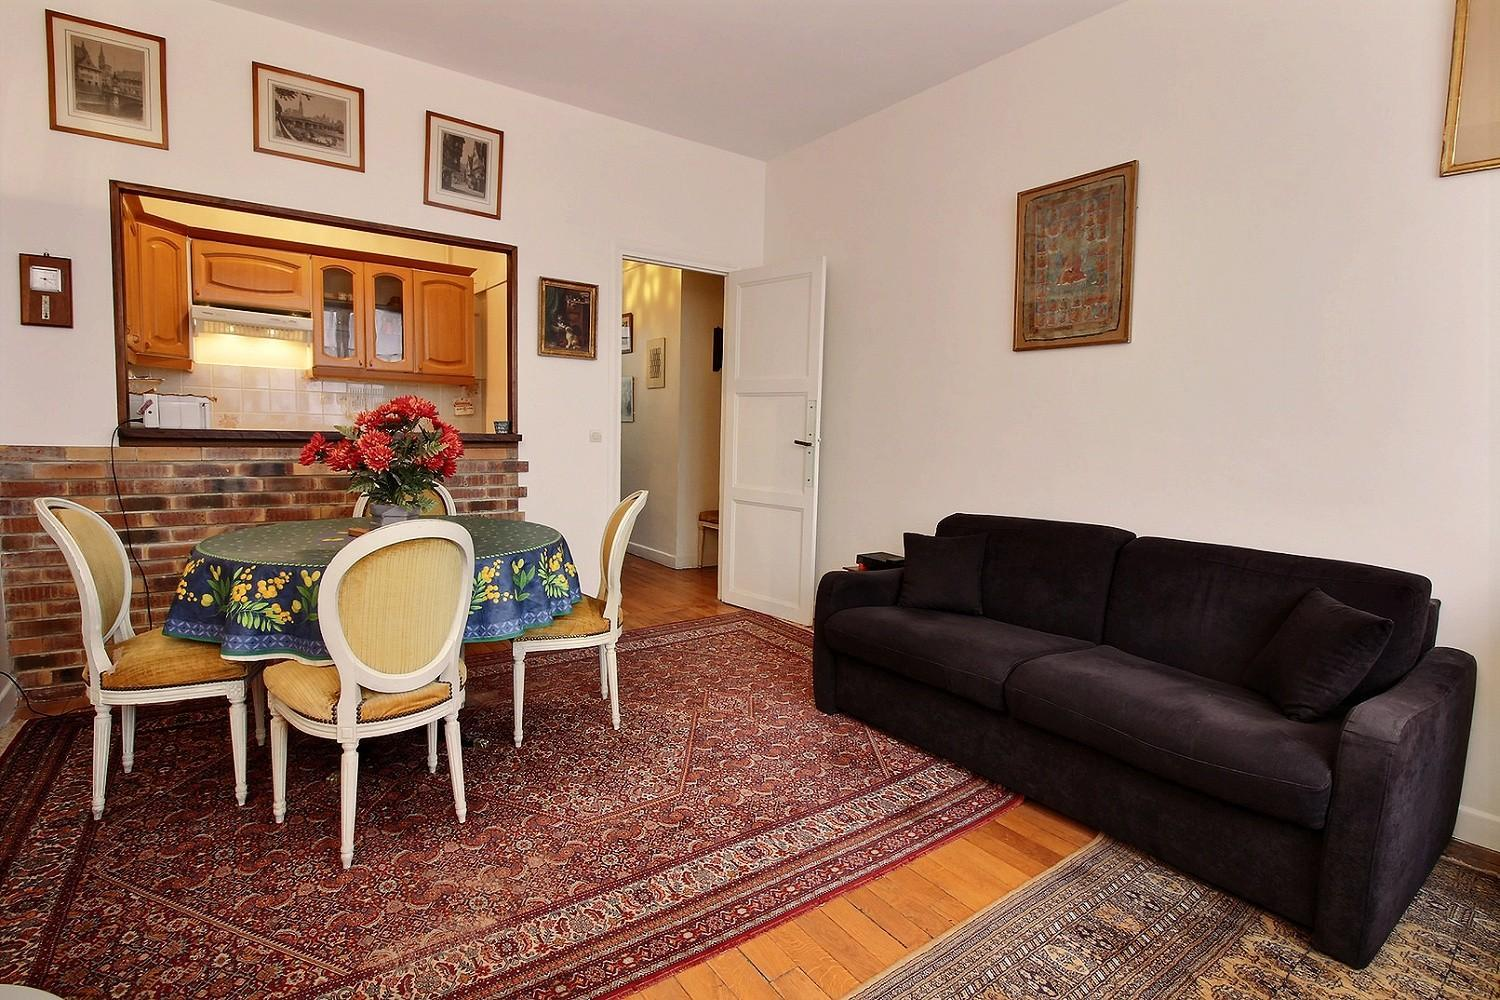 114510 - 3 person apartment in the 14th